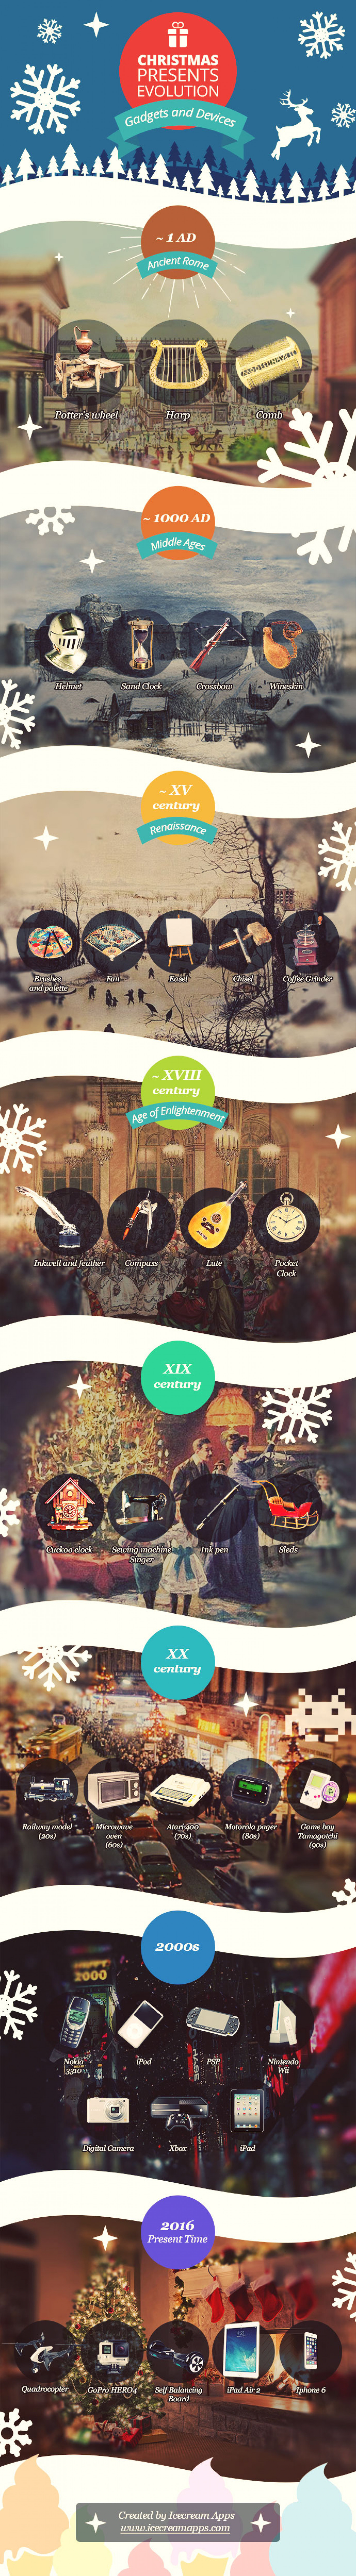 The Evolution of Christmas Gift Giving: Gadgets and Devices [Infographic] Infographic